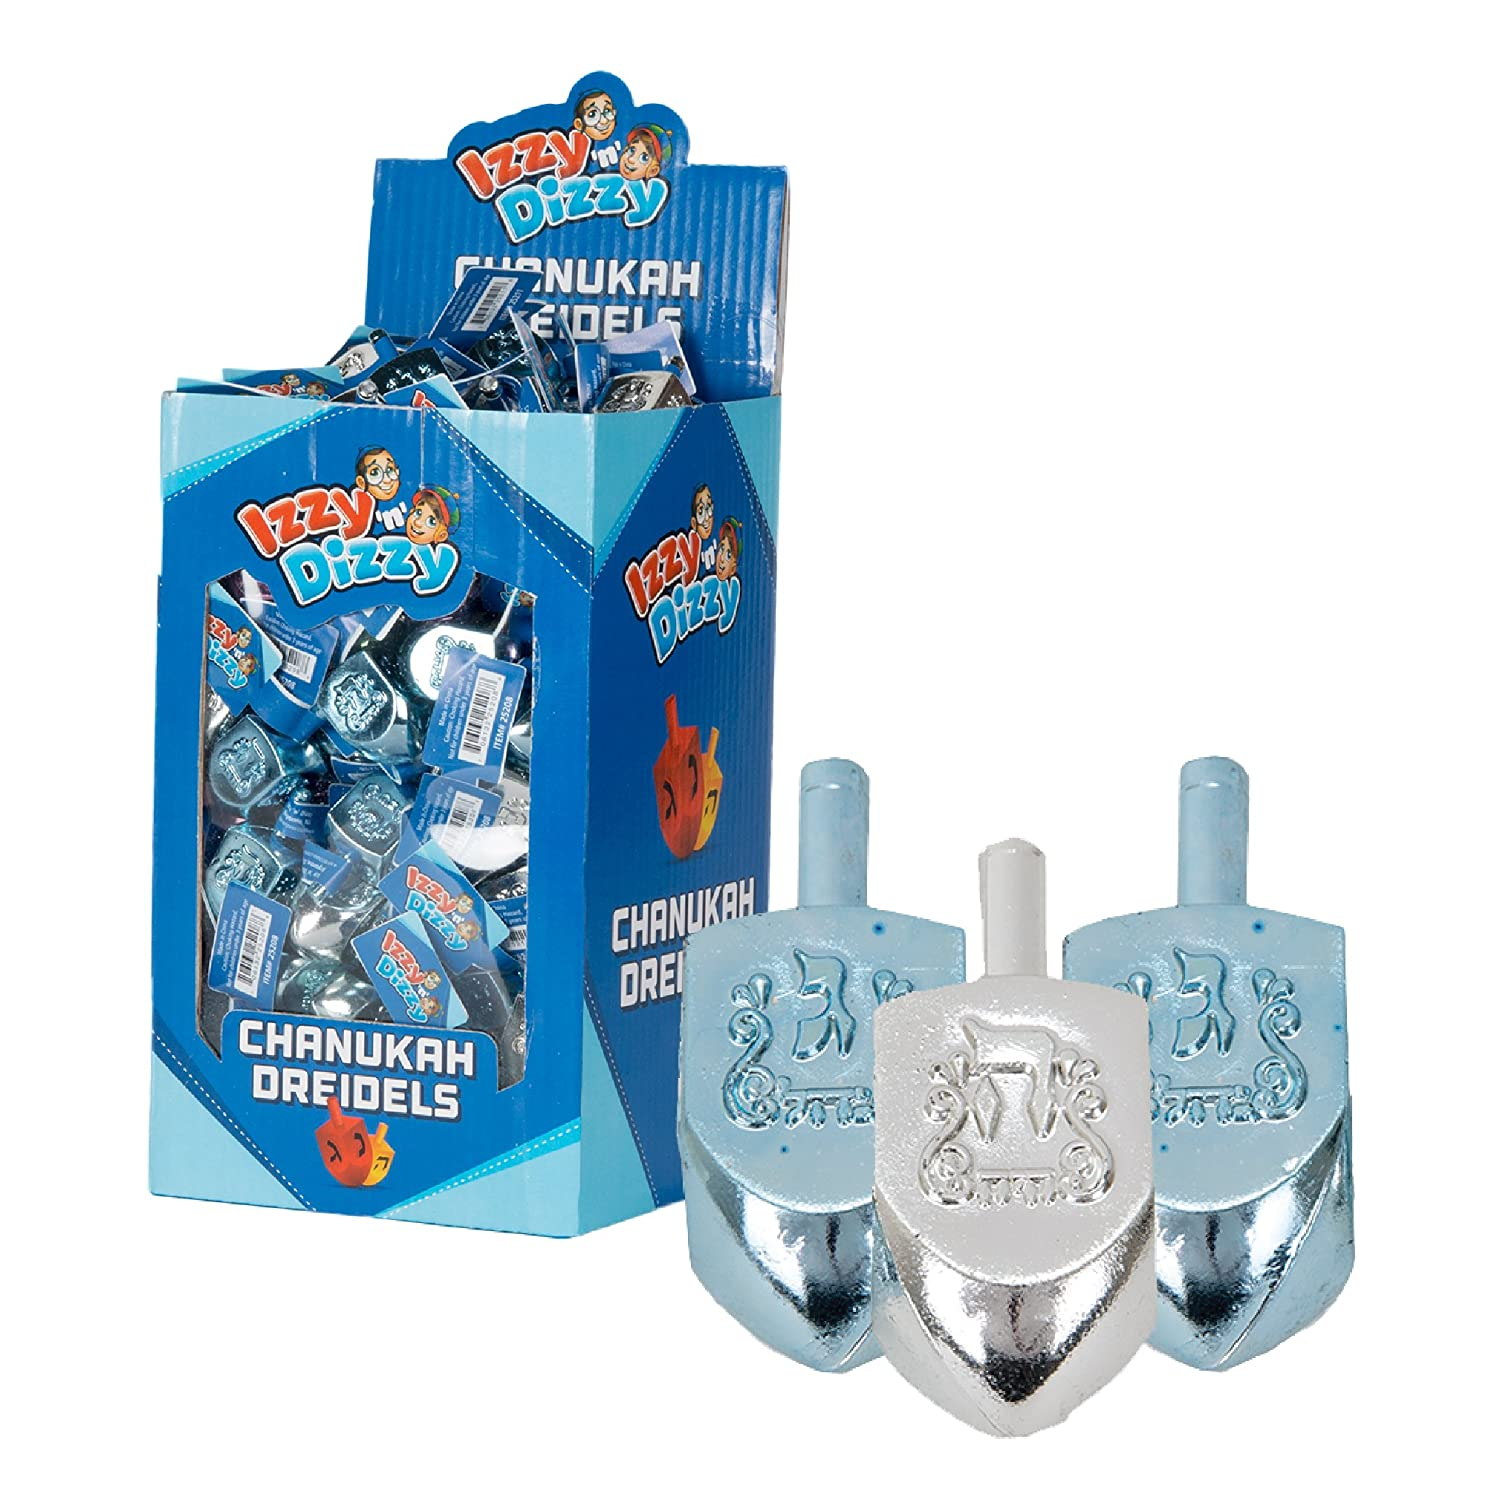 Blue and Silver Metallic by Izzy n Dizzy Classic Chanukah Spinning Draidel Game Bulk Value Pack Ner Mitzvah 100 Medium Dreidels Gift and Prize